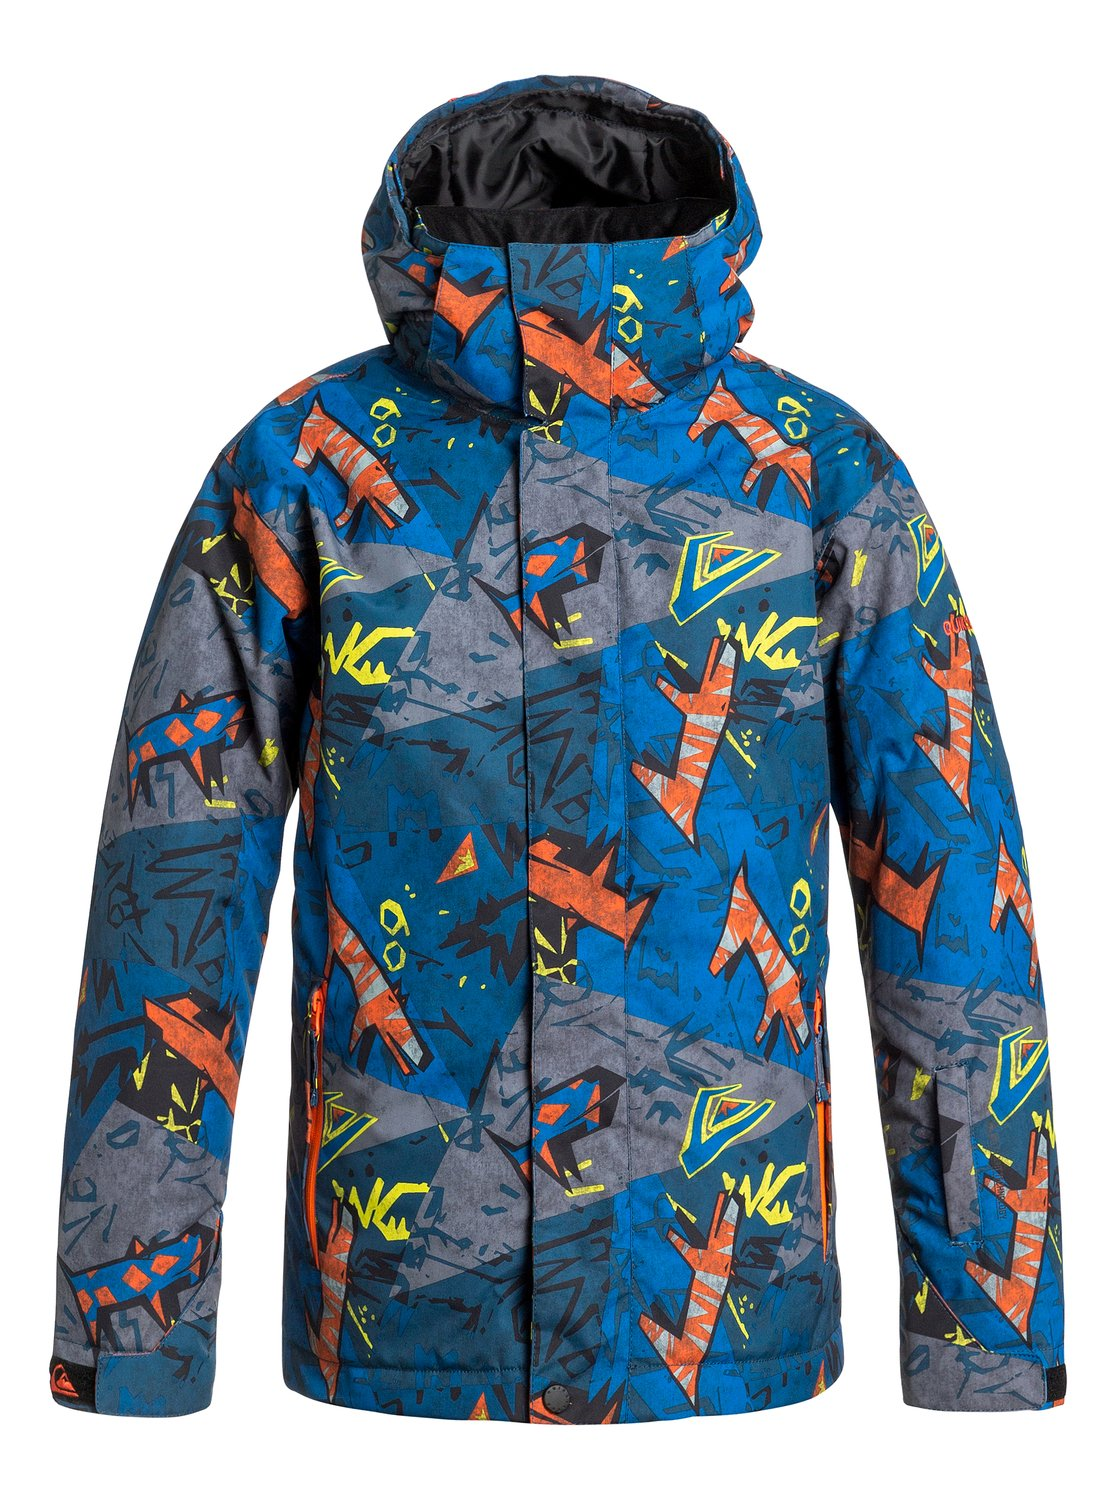 Mission Printed - Quiksilver��������������� ������ Mission Printed ��� ��������� �� ����� ��������������� ��������� Quiksilver. ��������������: ����������� ��� ���������, �������� ������������� �������, ������ ���������� �� ��������� ������� �� ����������, ������ ��� ��������, ������ ��� �����. ������: 100% ���������.<br>